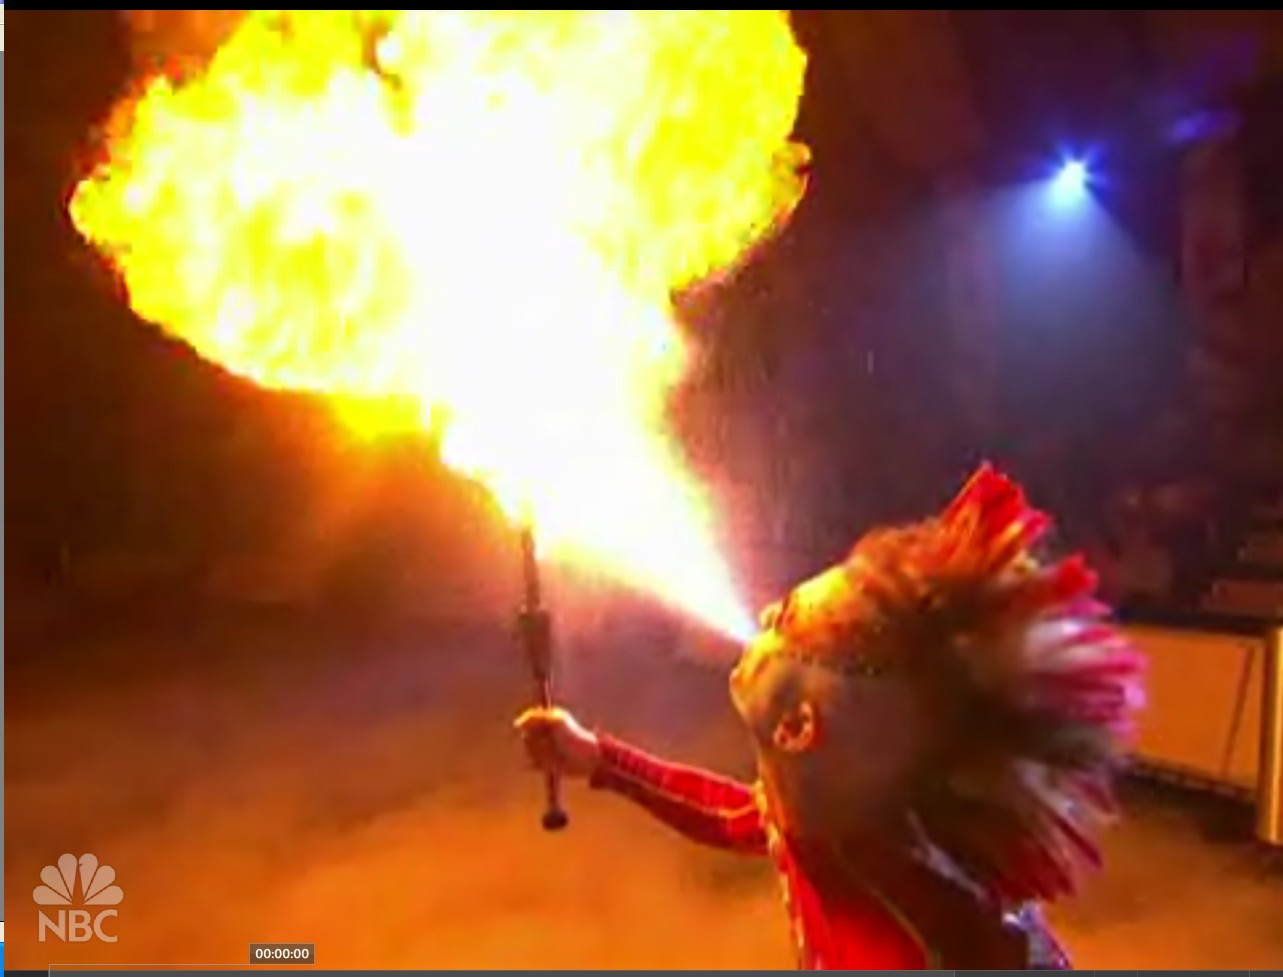 Rob Breathing Fire on NBC